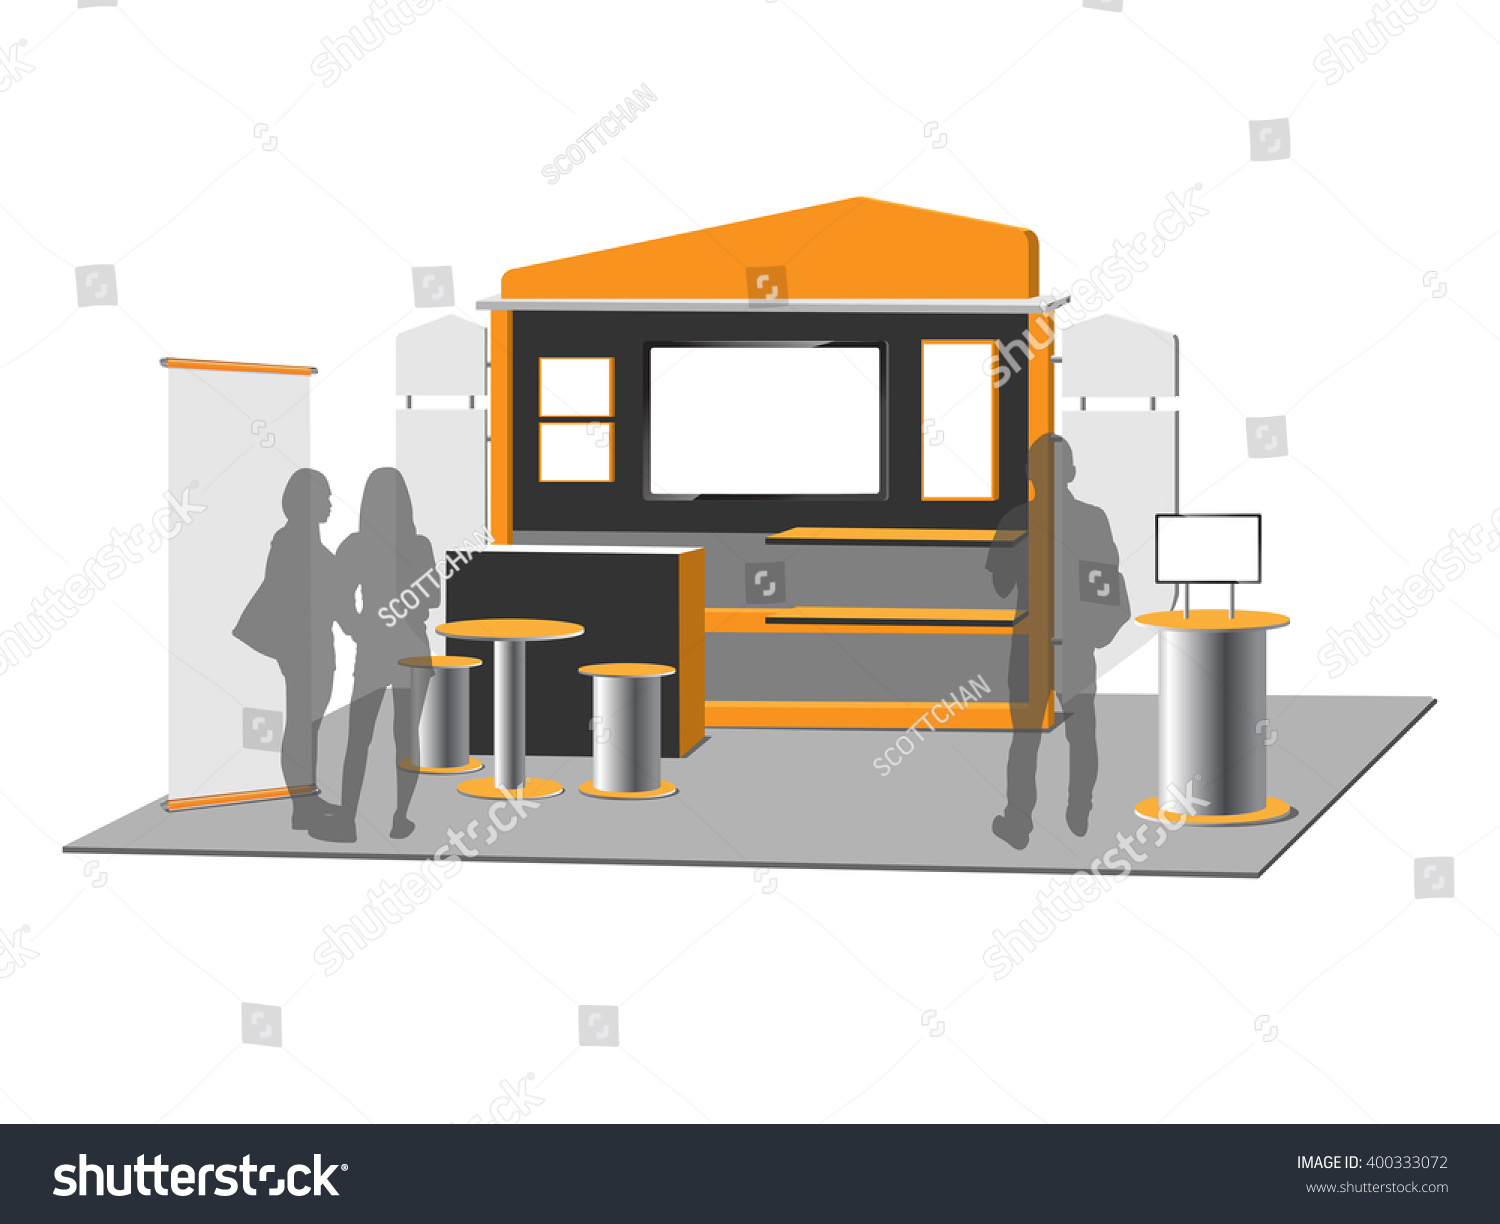 Exhibition Stand Design Vector : Blank trade exhibition stand vector stock